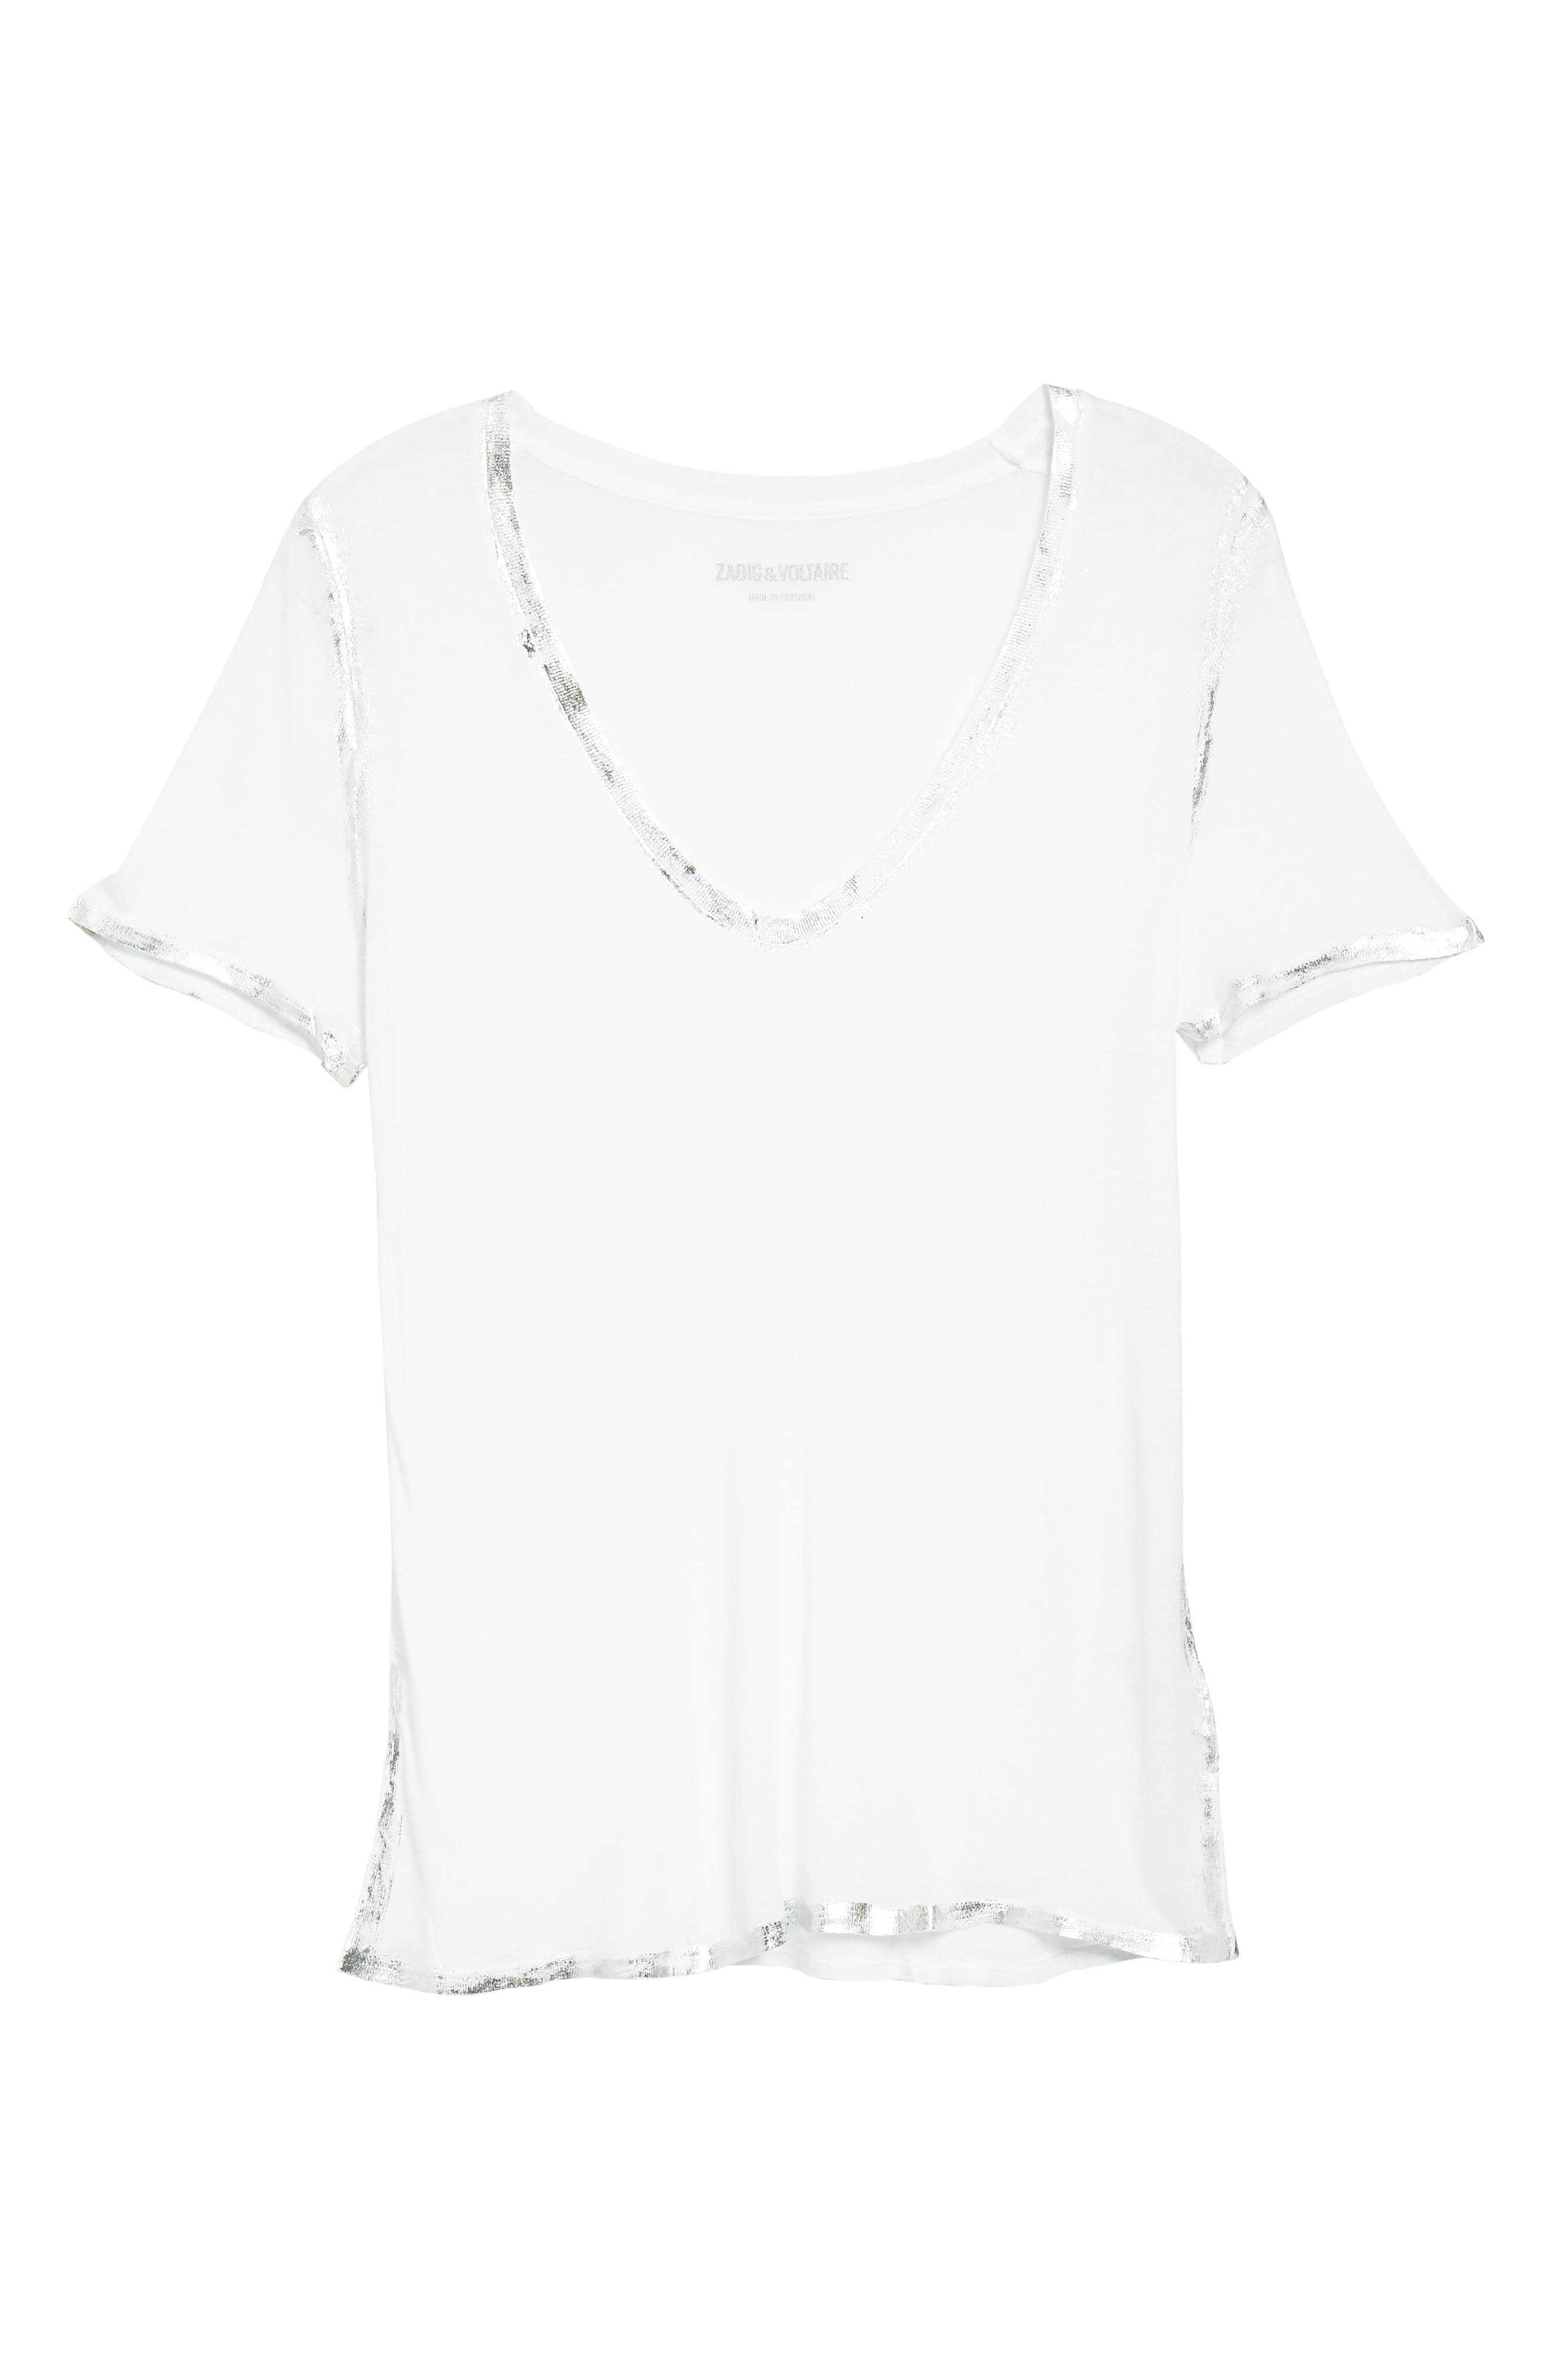 Main Image - Zadig & Voltaire 'Tino' Foil Accent Tee